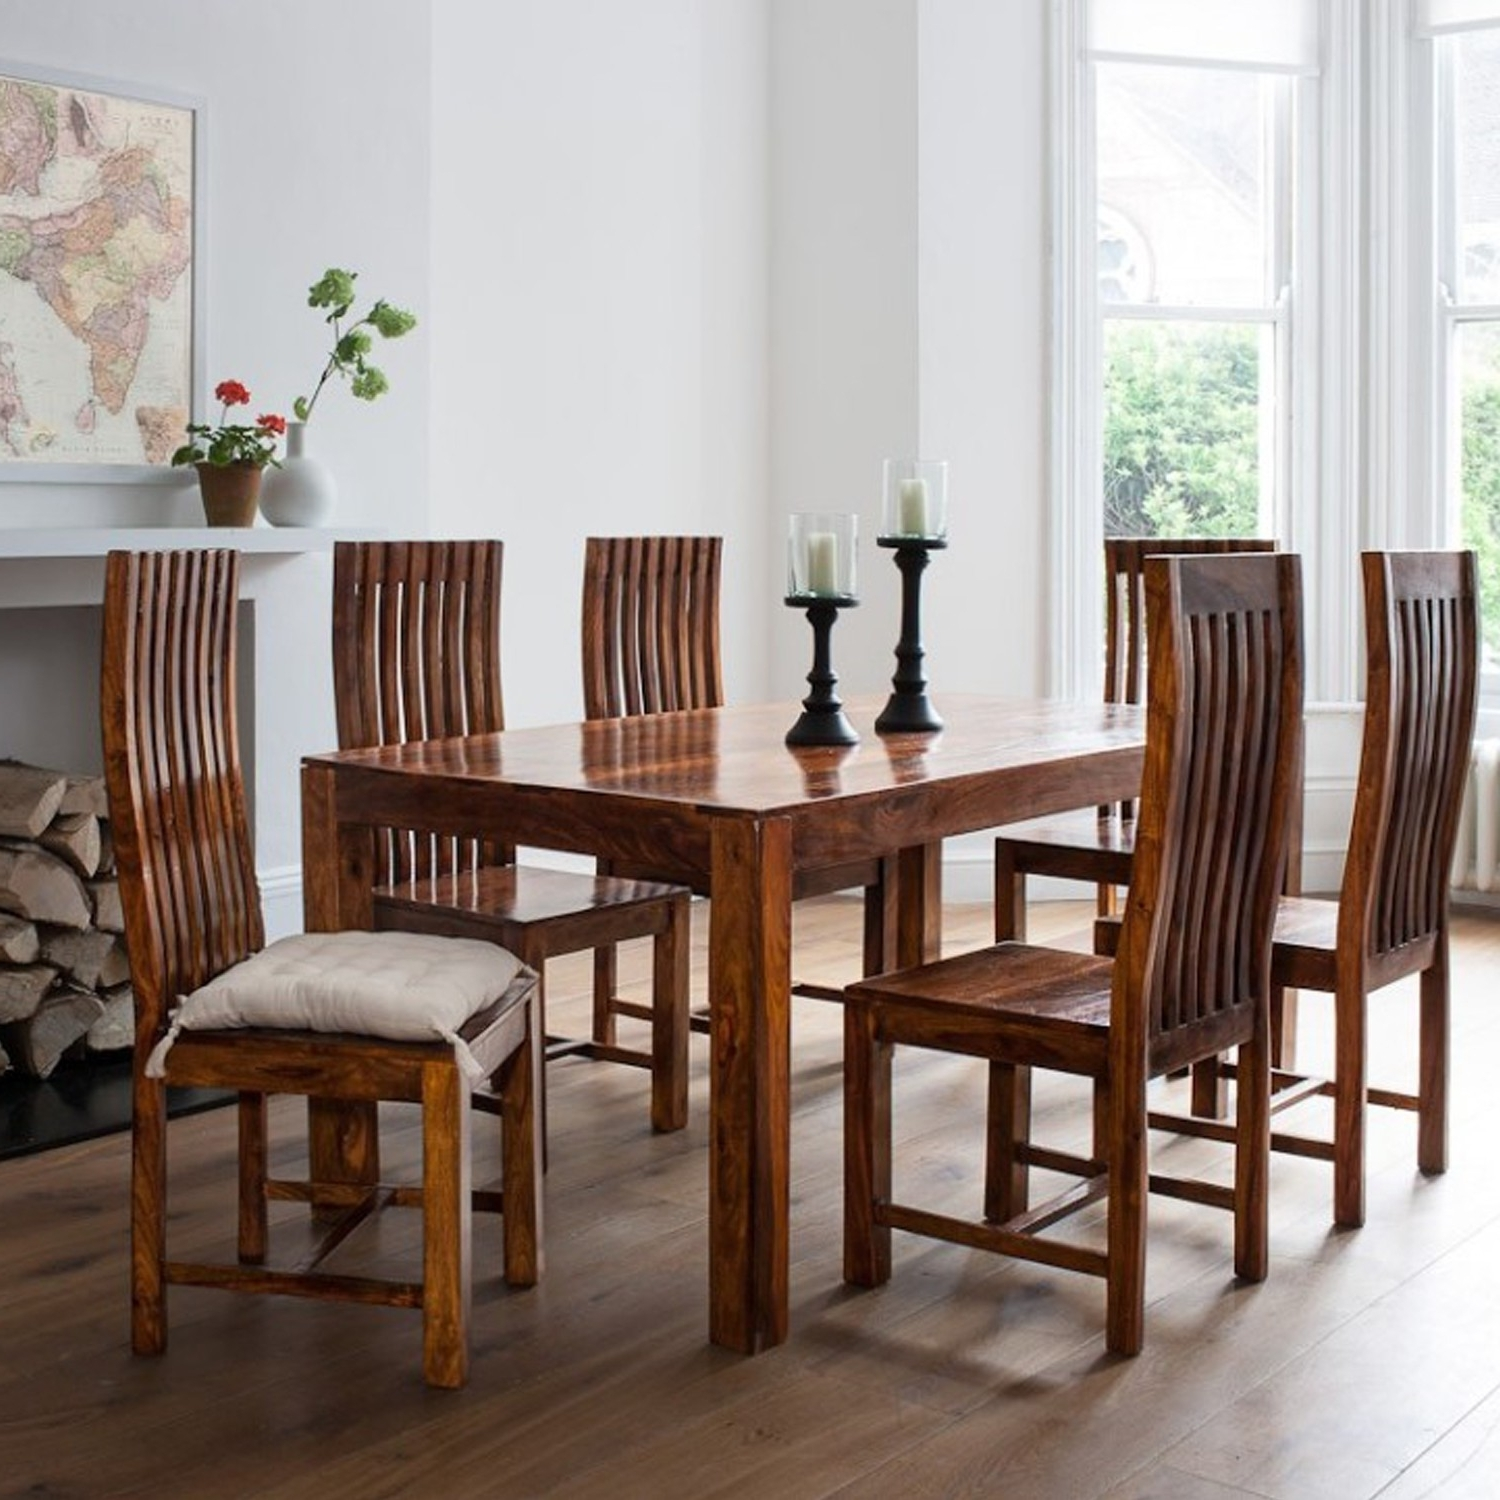 Most Recent Sheesham Dining Tables 8 Chairs Intended For Thar Art Gallery::sheesham Wood Dinning Table 6 Chairs,sheesham Wood (View 12 of 25)